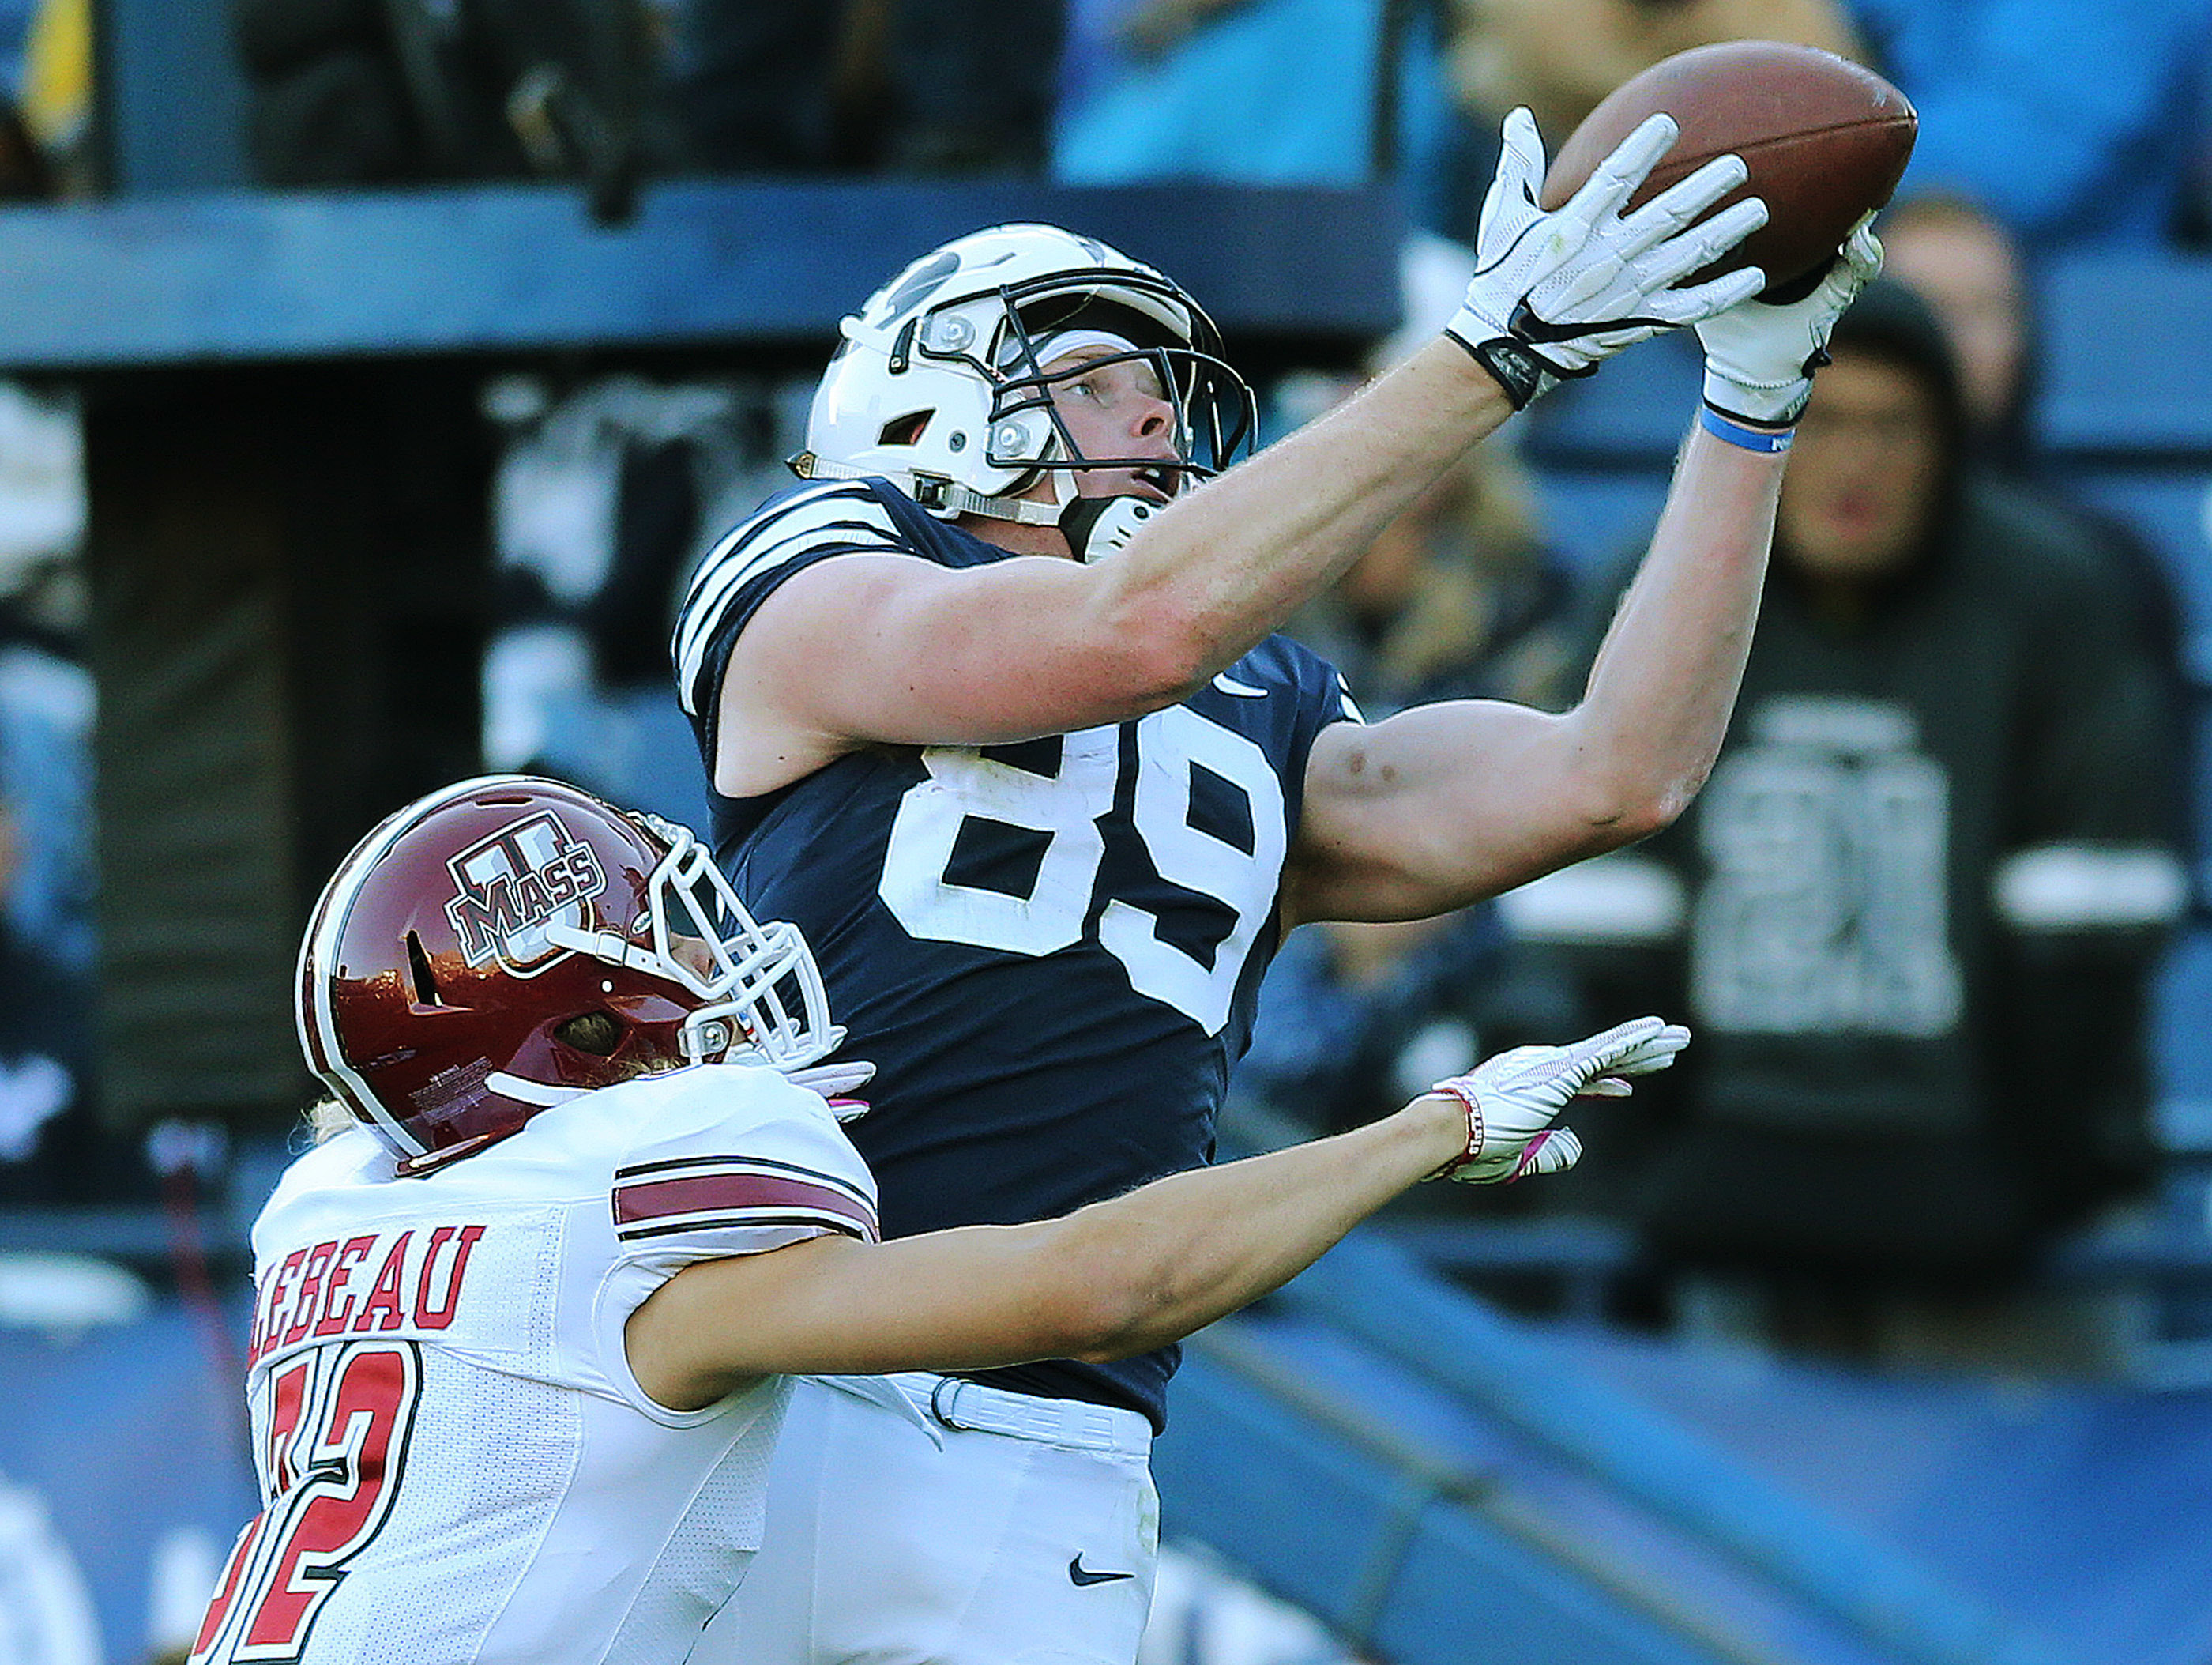 BYU tight end Matt Bushman catches a touchdown against Massachusetts in Provo on Saturday, Nov. 18, 2017. Massachusetts Minutemen won 16-10.